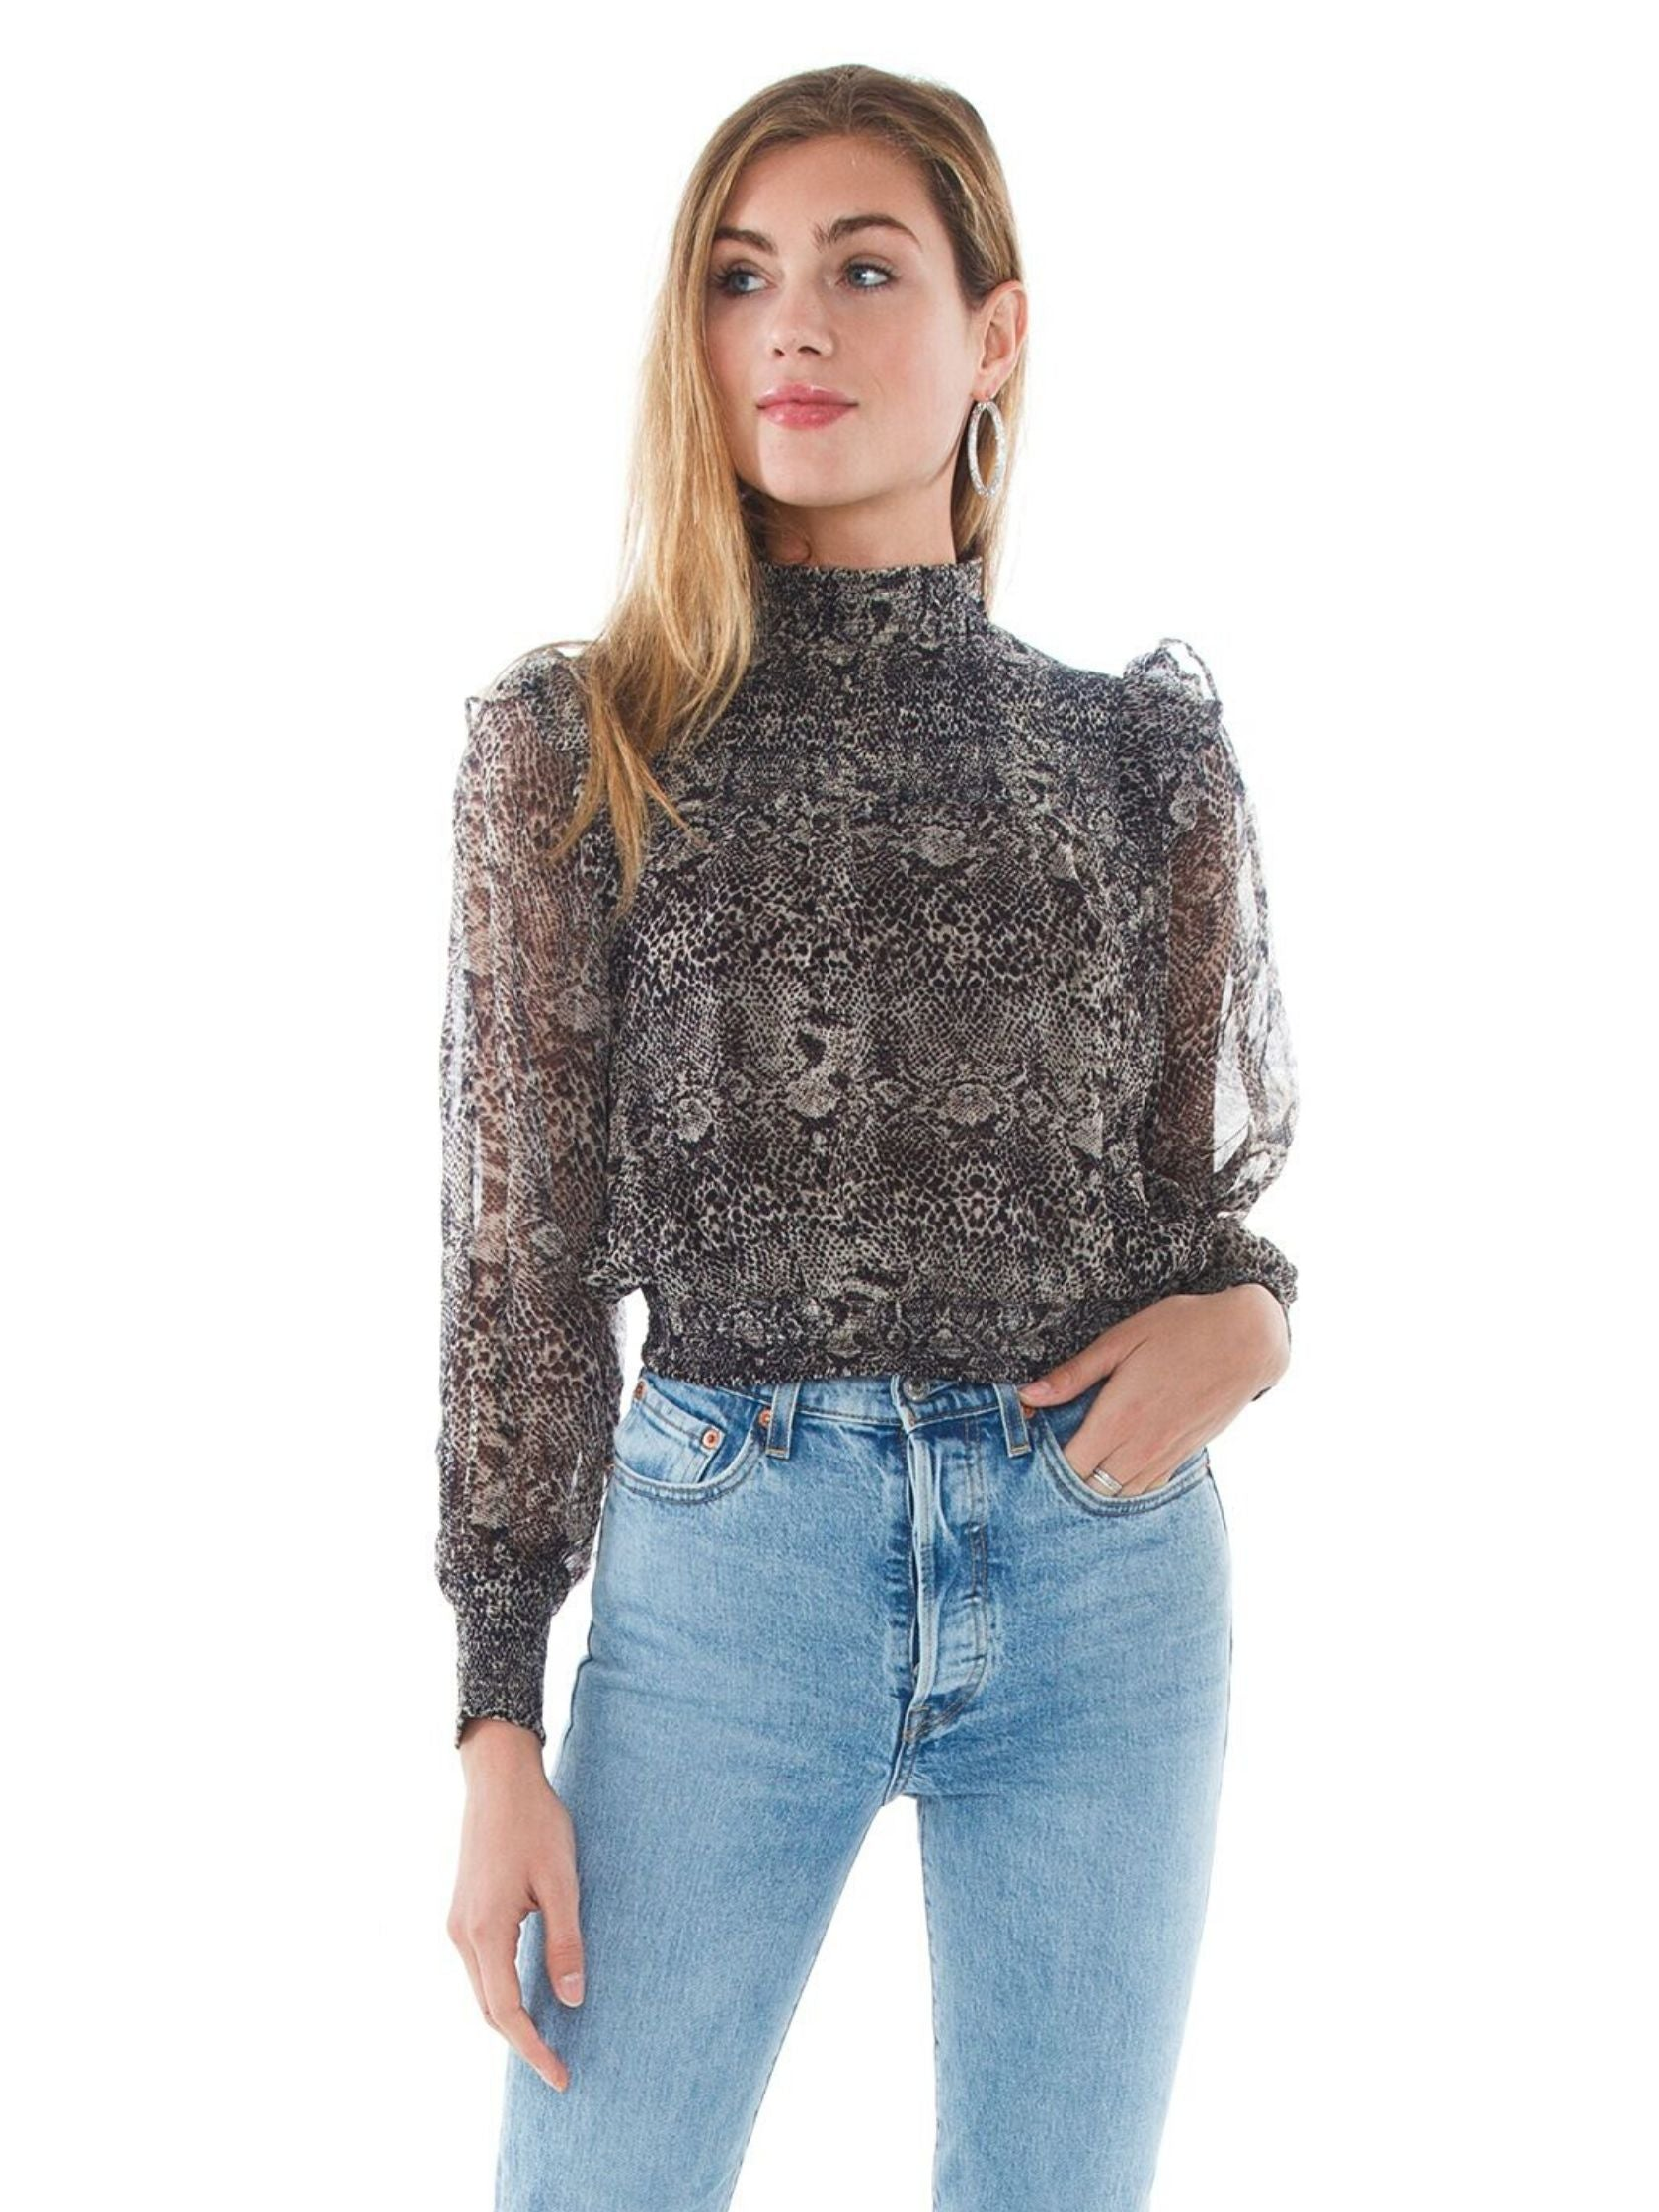 Woman wearing a top rental from Free People called Roma Blouse